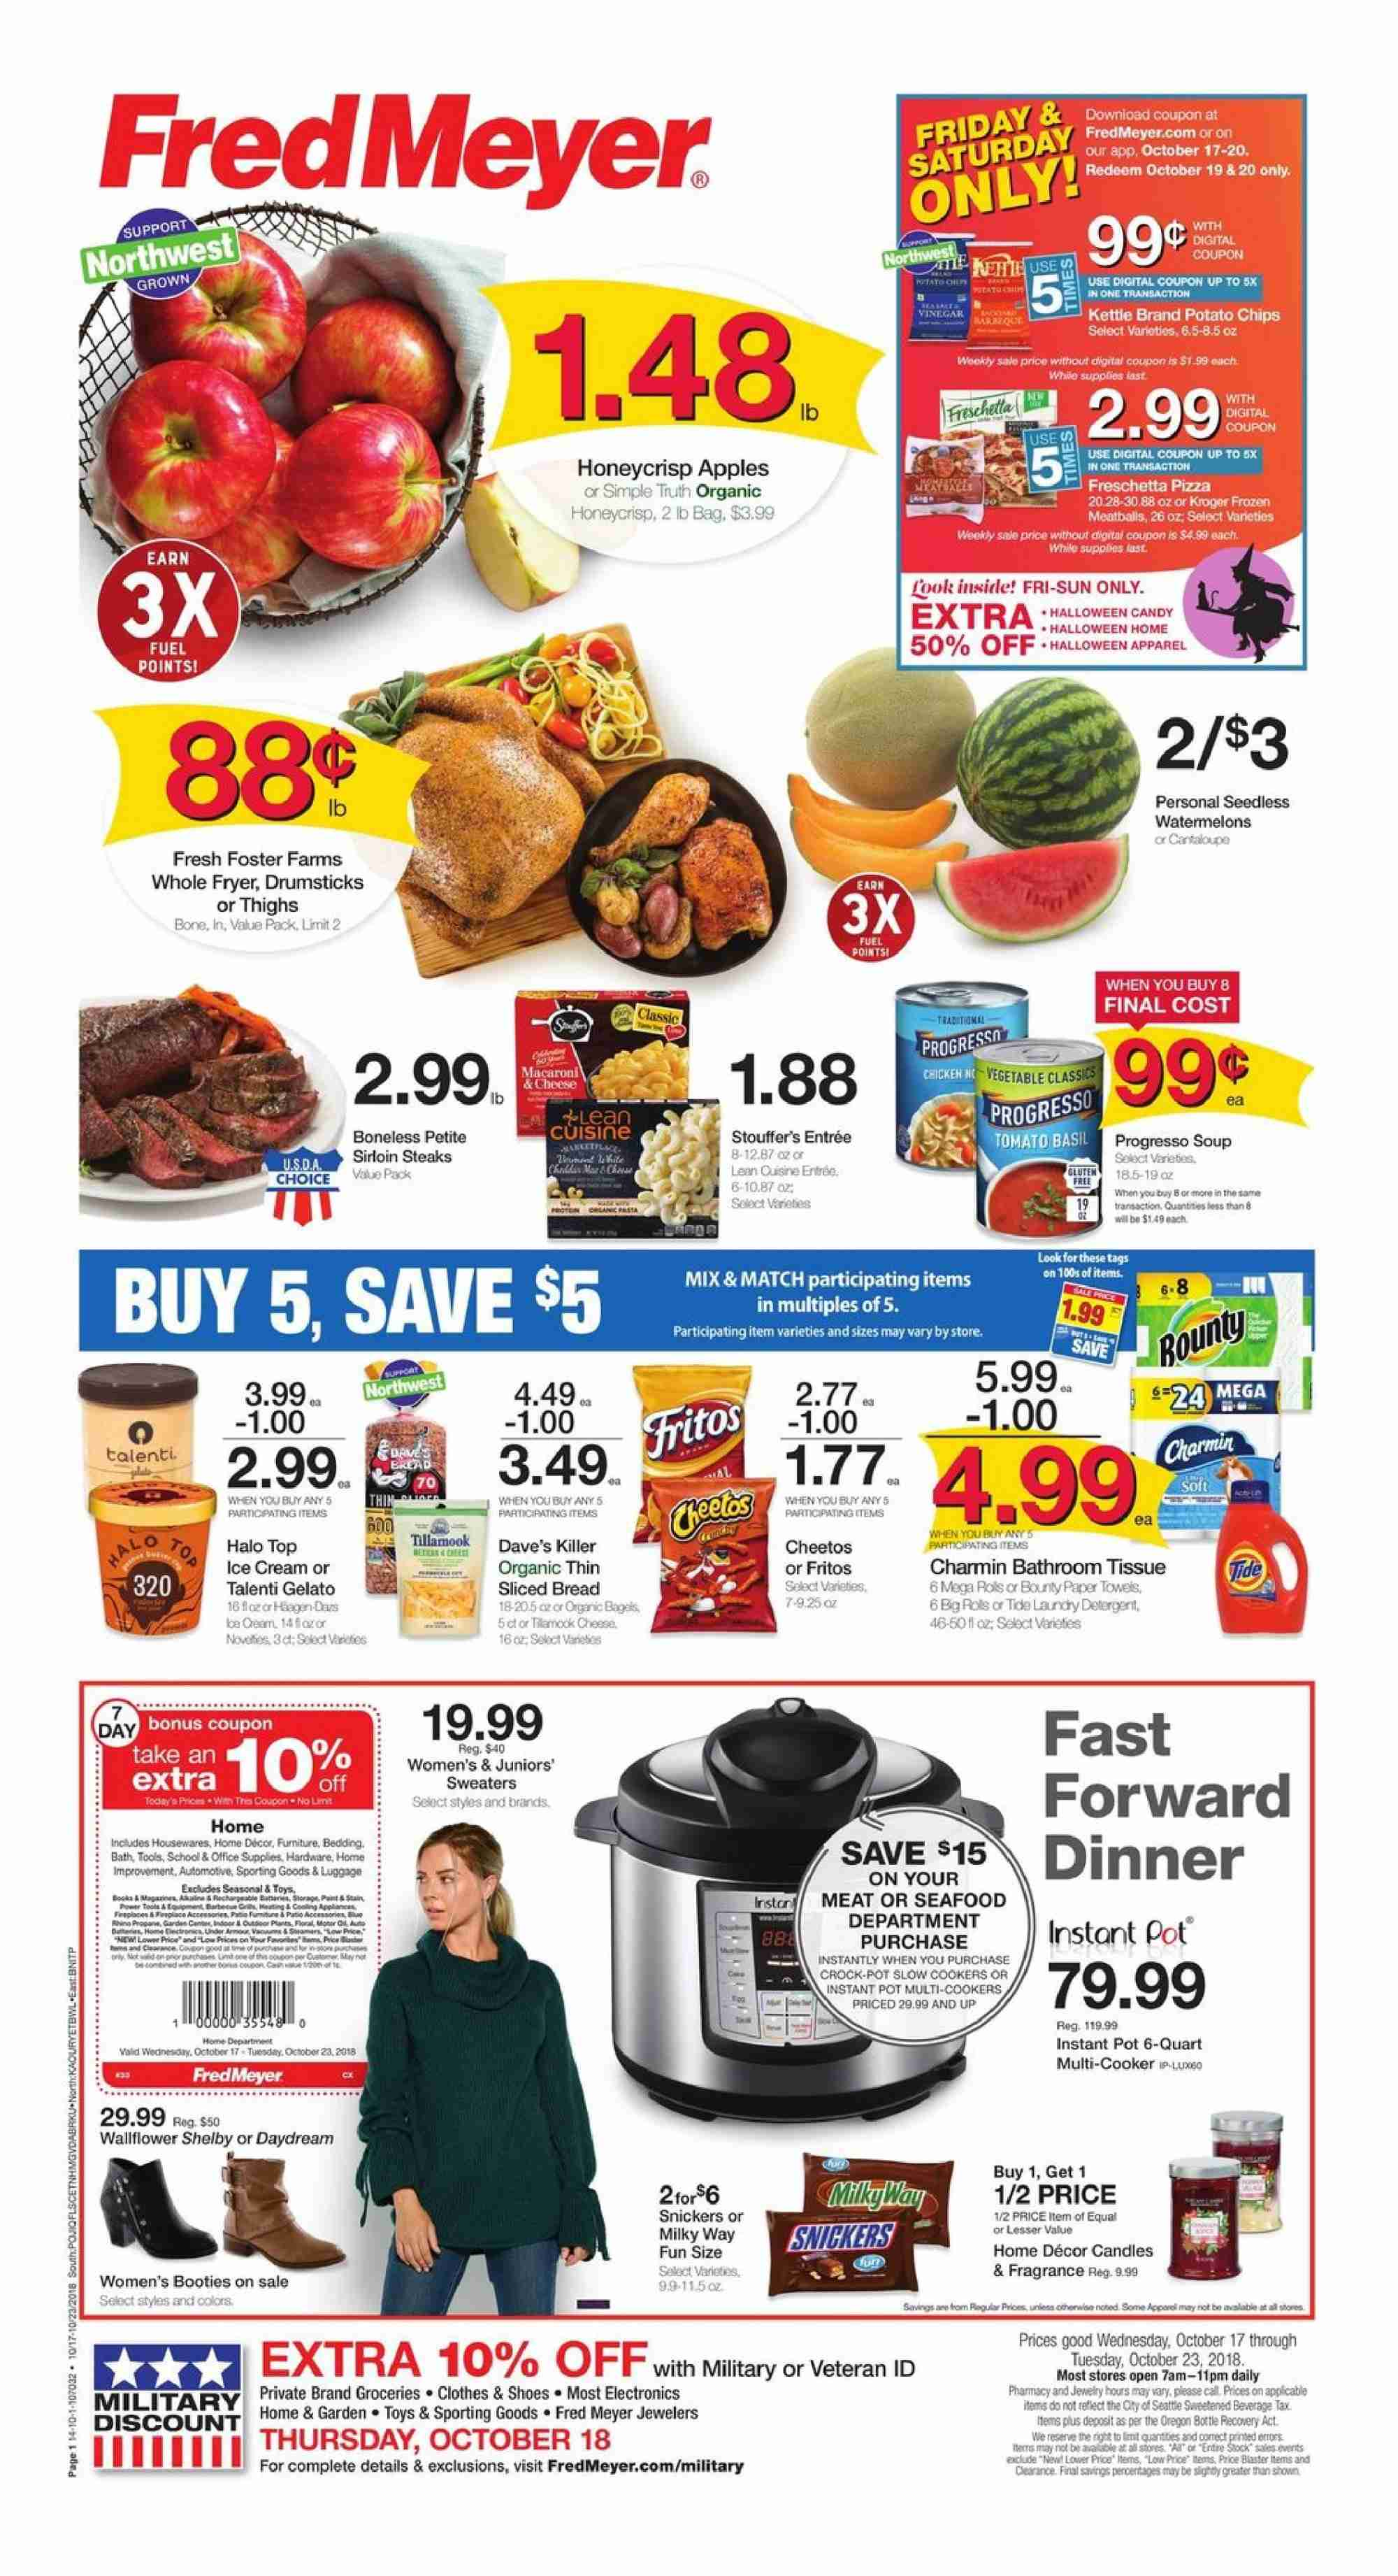 Fred Meyer Flyer - 10.17.2018 - 10.23.2018 - Sales products - tomatoes, apples, bread, seafood, cheese, candy, Milky Way, Snickers, potato chips, chips, Fritos, detergent, Tide, fragrance, tools, pot, Frozen, candle, bedding collection, toys. Page 1.